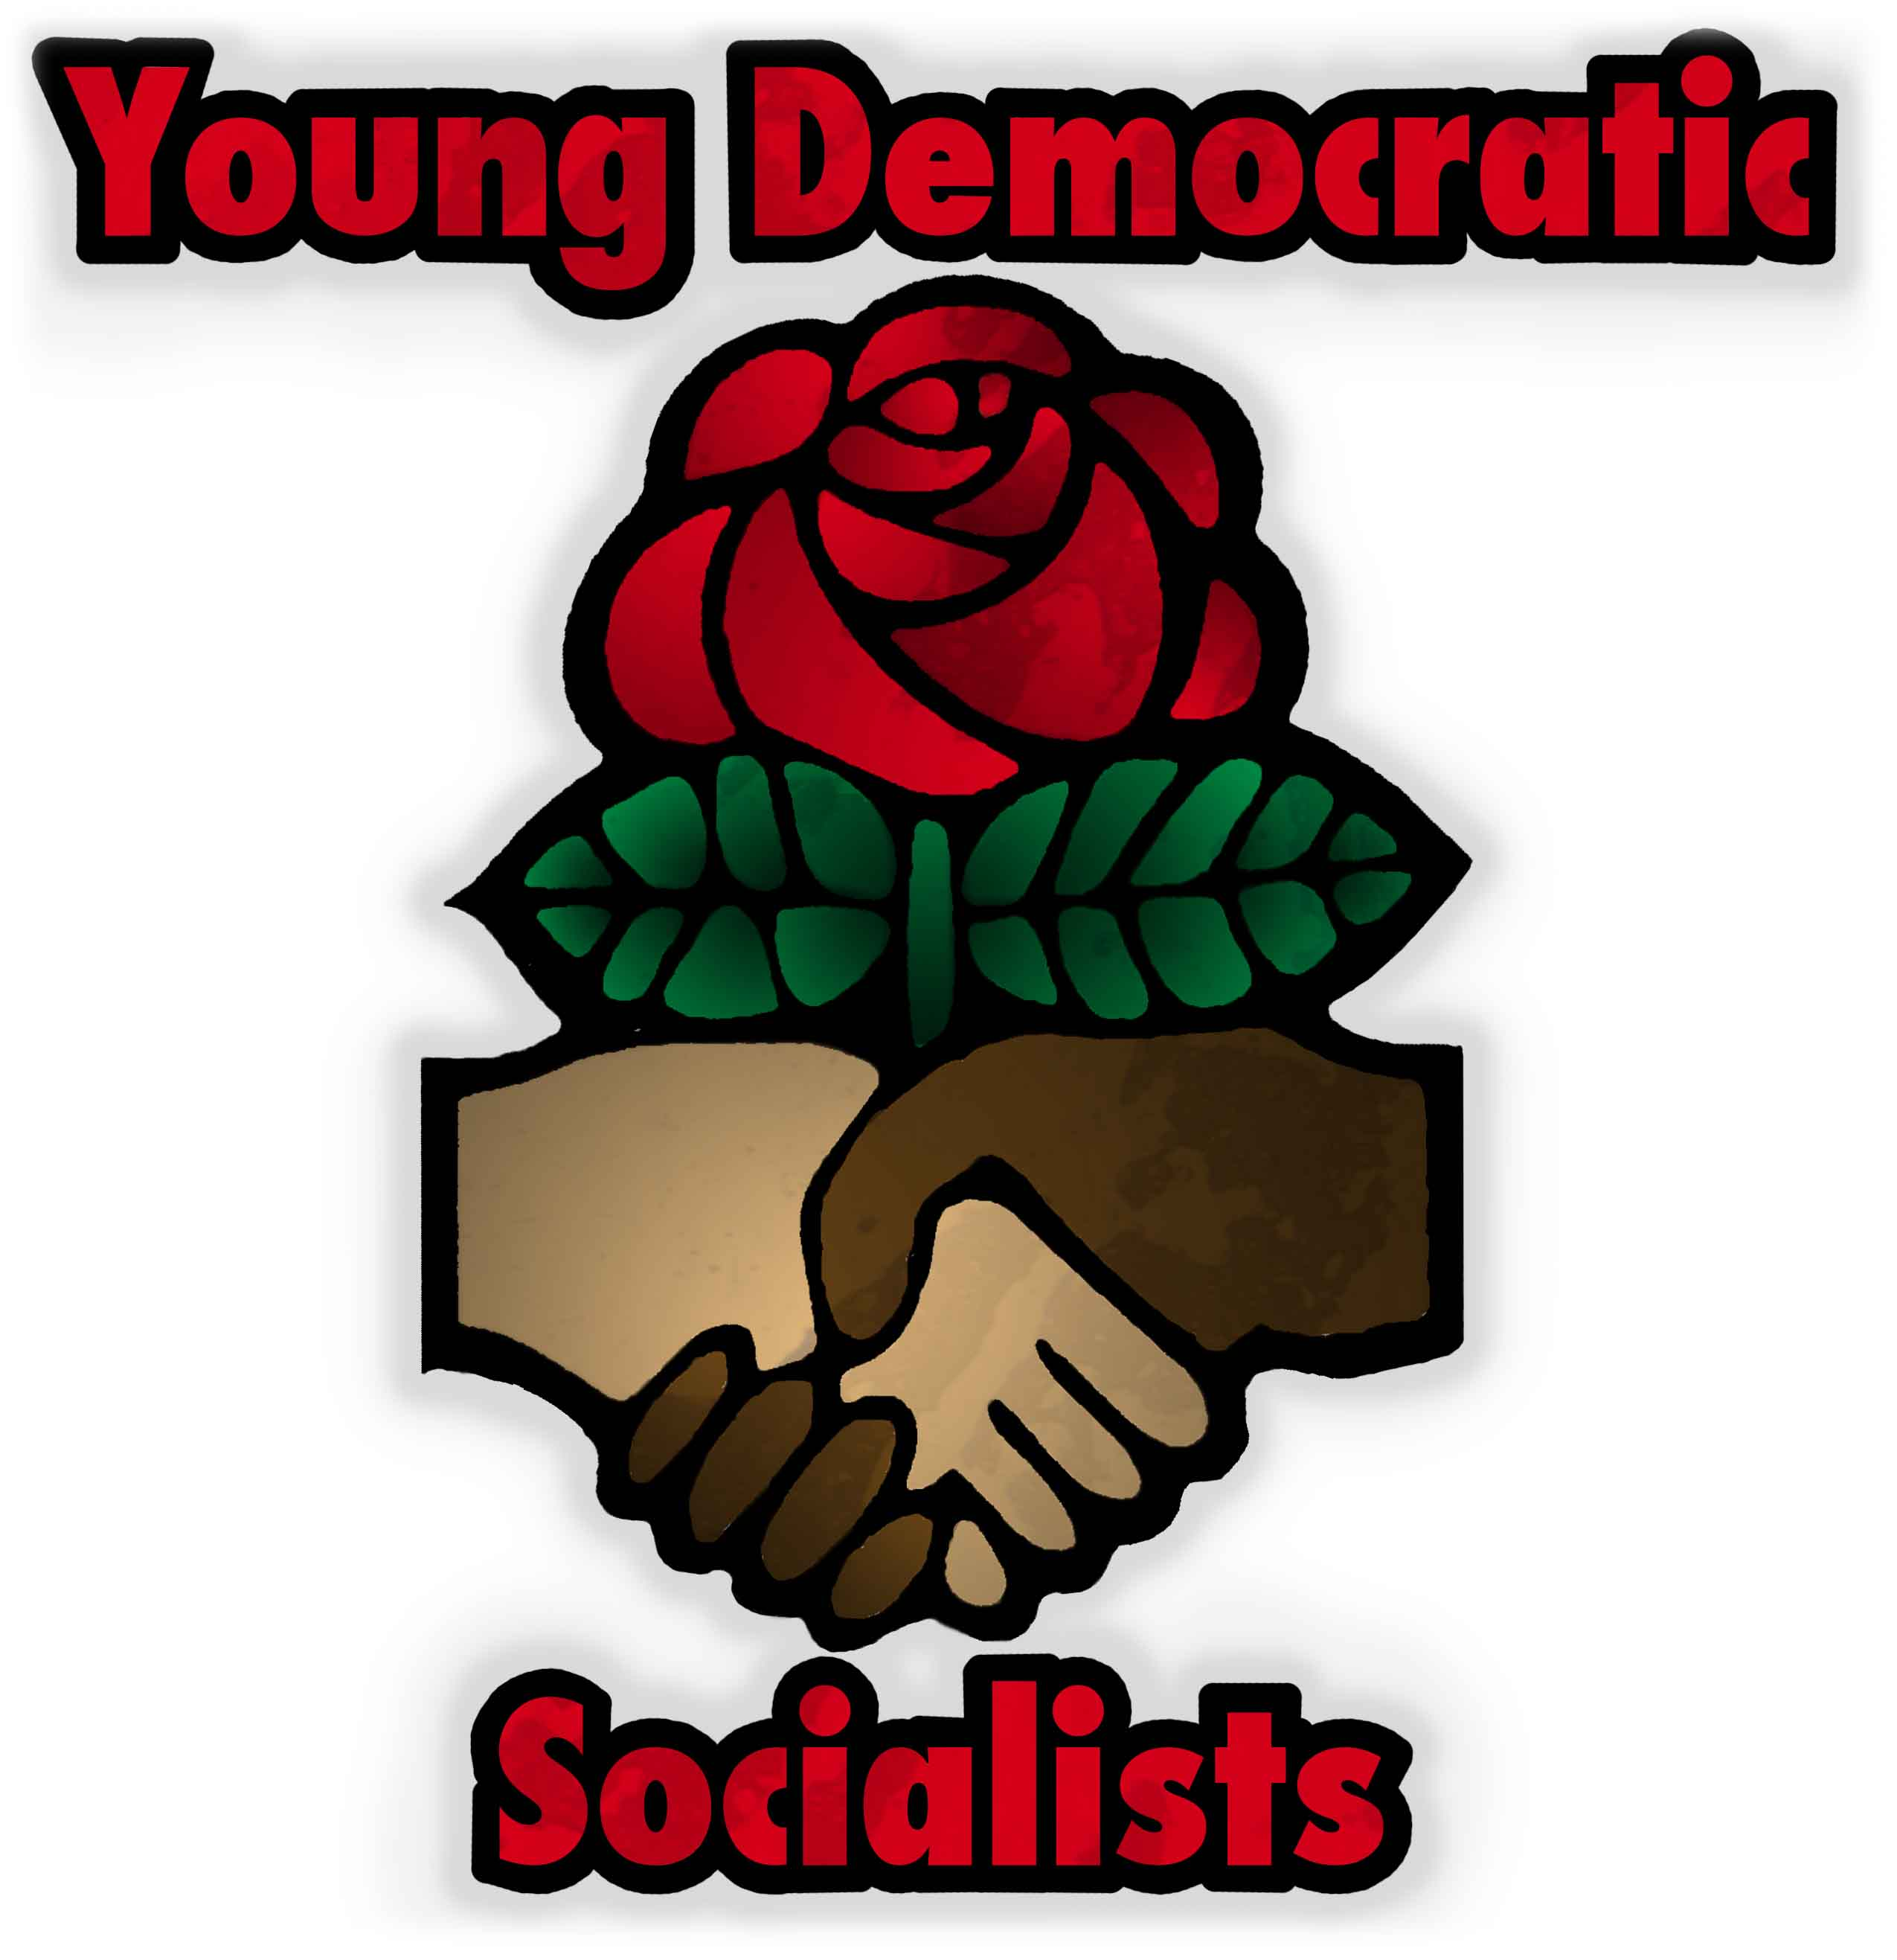 the new era of democratic socialism Democratic socialists of america, new york democracy and socialism have nothing in common but one word: equality but notice the difference: while democracy seeks equality in liberty, socialism seeks equality in restraint and servitude.